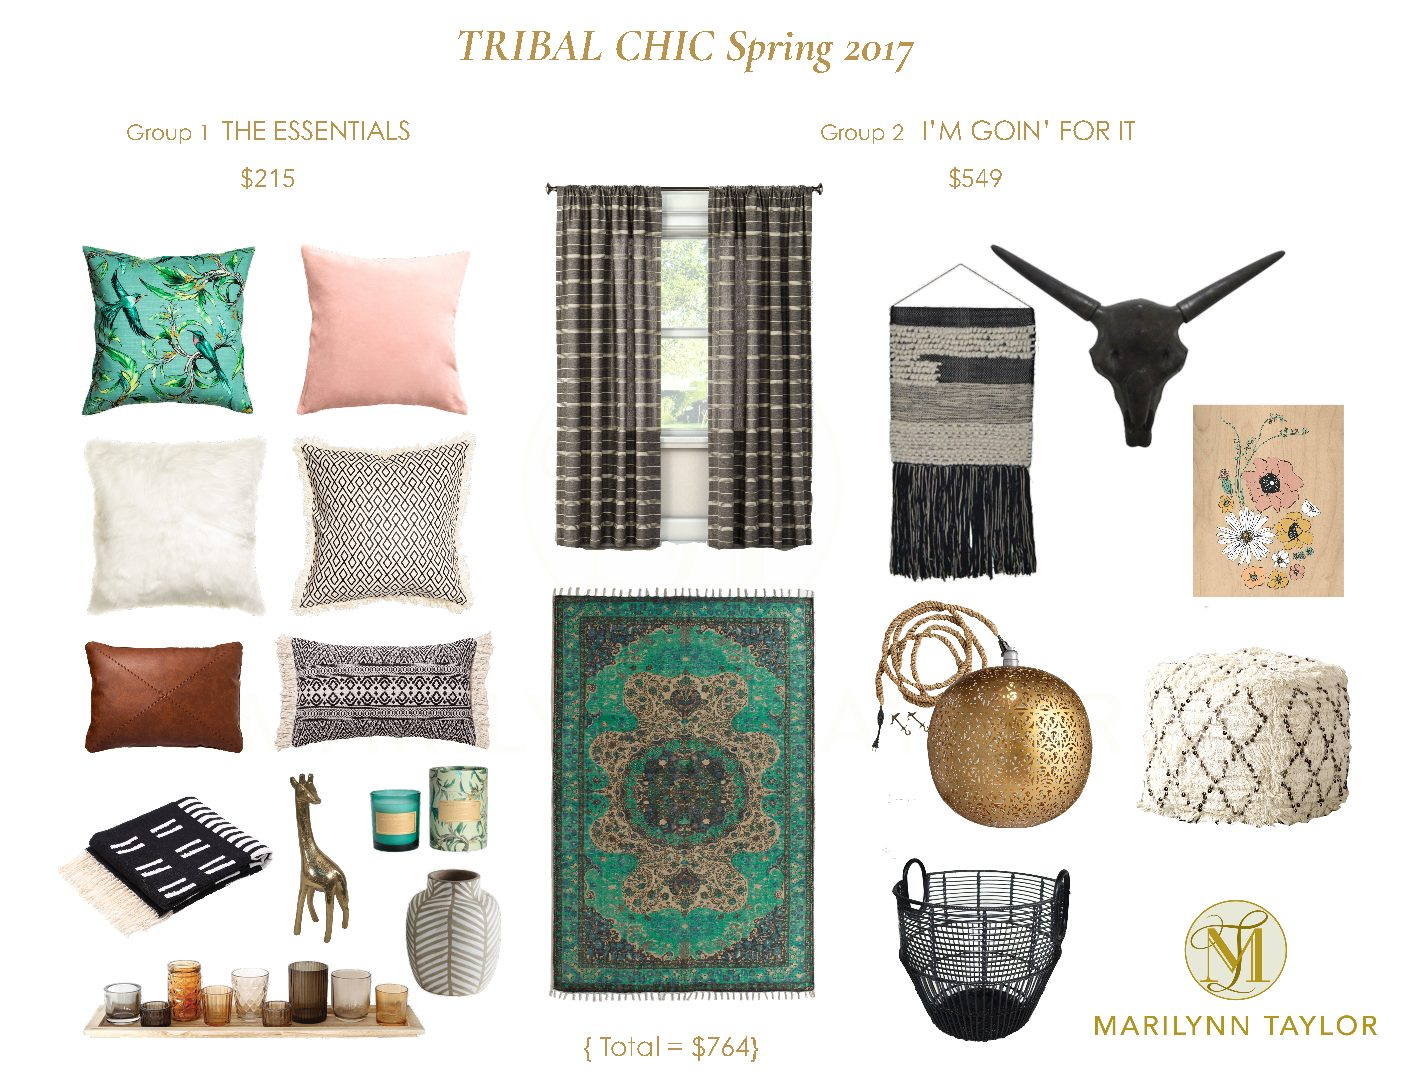 Tribal Chic Spring 2017 cover